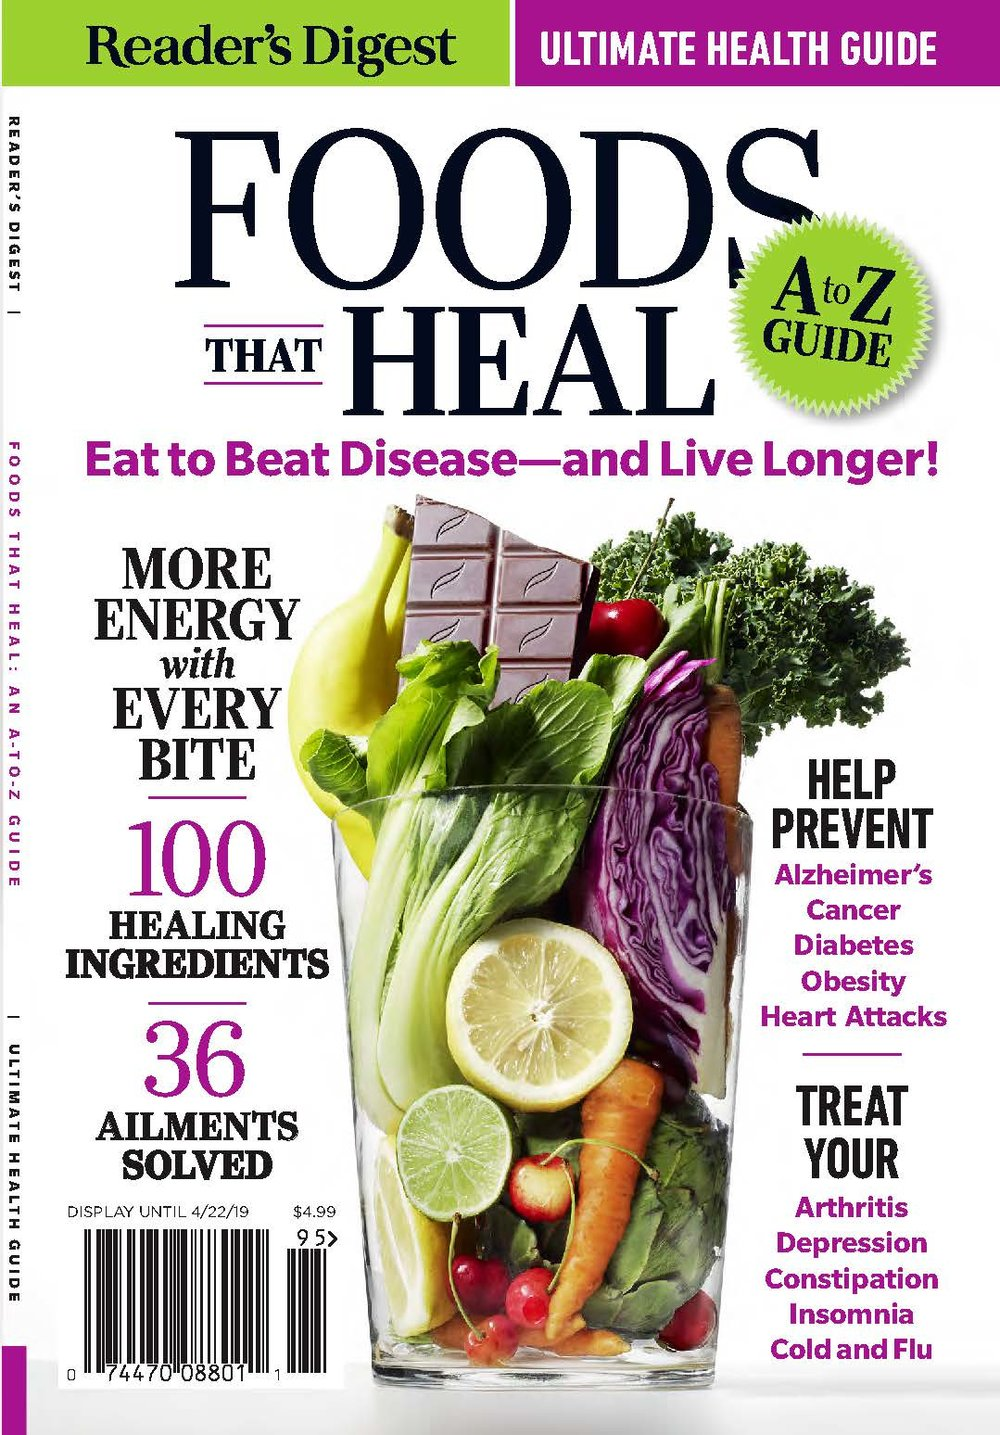 Foods That Heal - SPECIAL INTEREST PUBLICATIONCreated interior page concepts and design for the newly updated book, Foods That Heal. This is the latest version of Foods That Harm, Foods That Heal!A-Z Guide of 100 Foods Detailed descriptions about what foods can boost your health.Ailments Quick tips on how you can avoid each condition with healing foods.Recipe Section inspired from the foods shared in the book: Breakfasts, lunches, dinners and desserts.COVER DESIGN: Courtney Murphy, Reader's Digest Creative Director